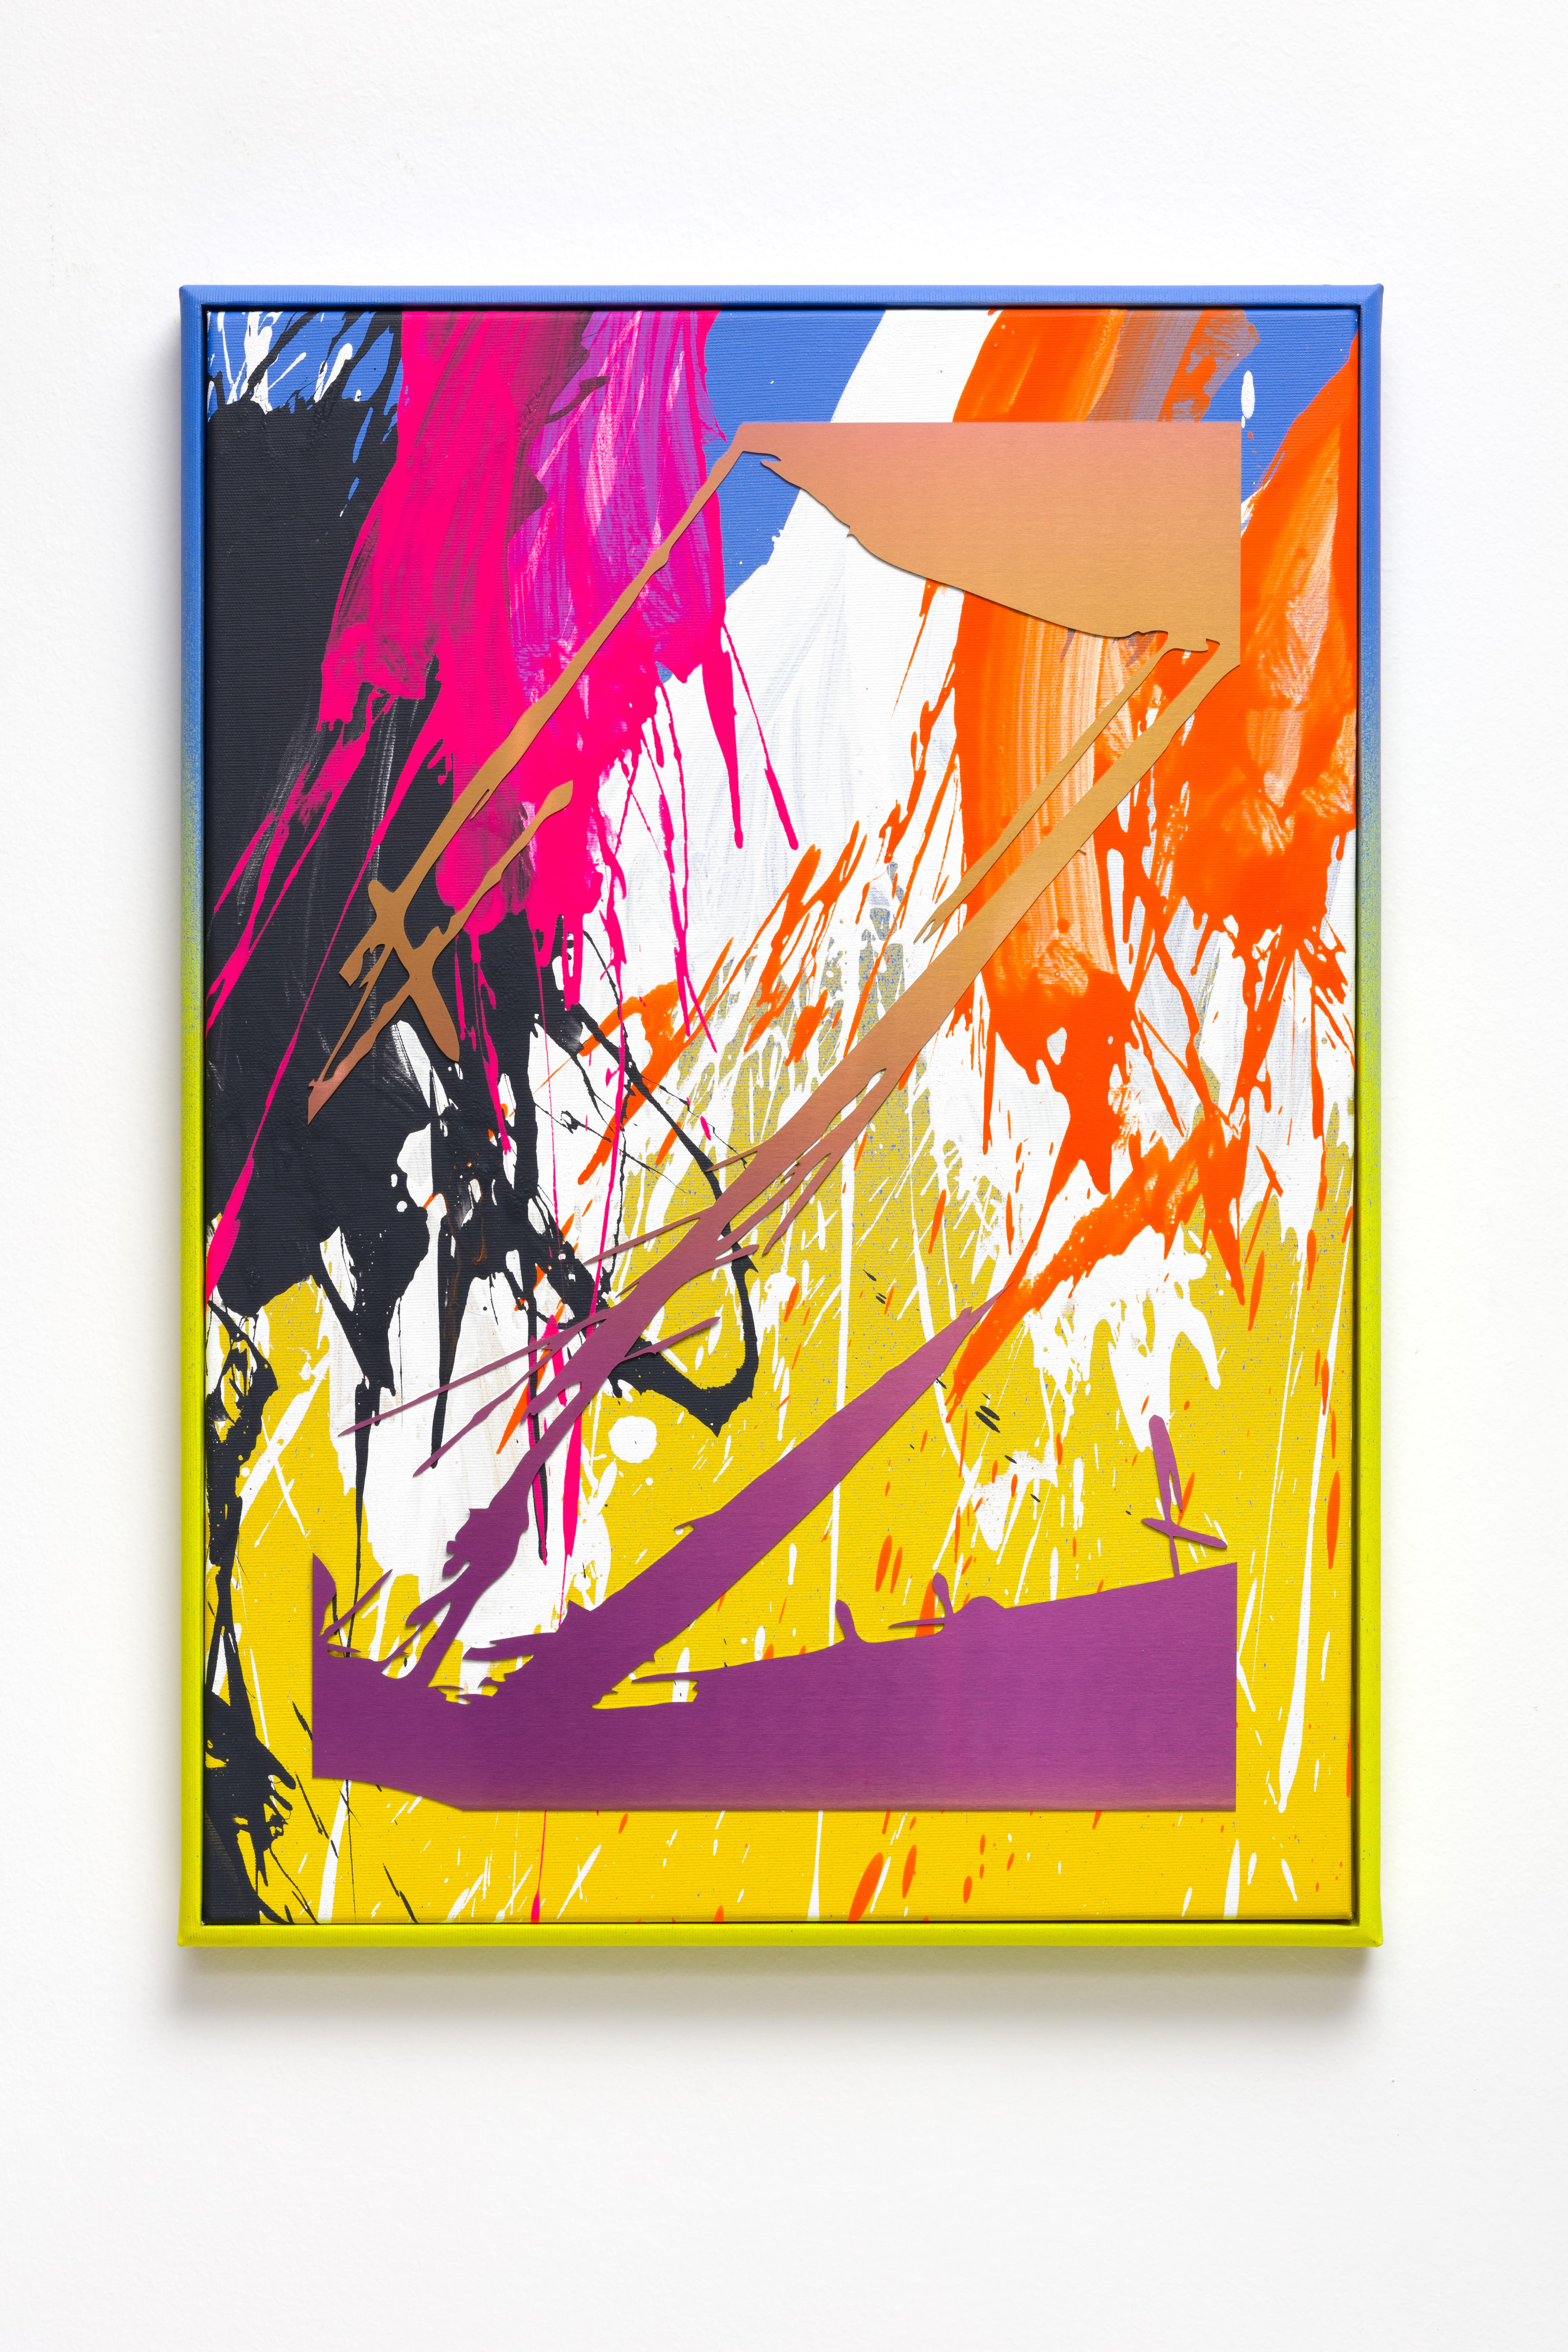 NemesM_Nothing-Without-08_2021_72x52cm_PVD-coated-stainless-steel-acrylic-canvas-wood-min